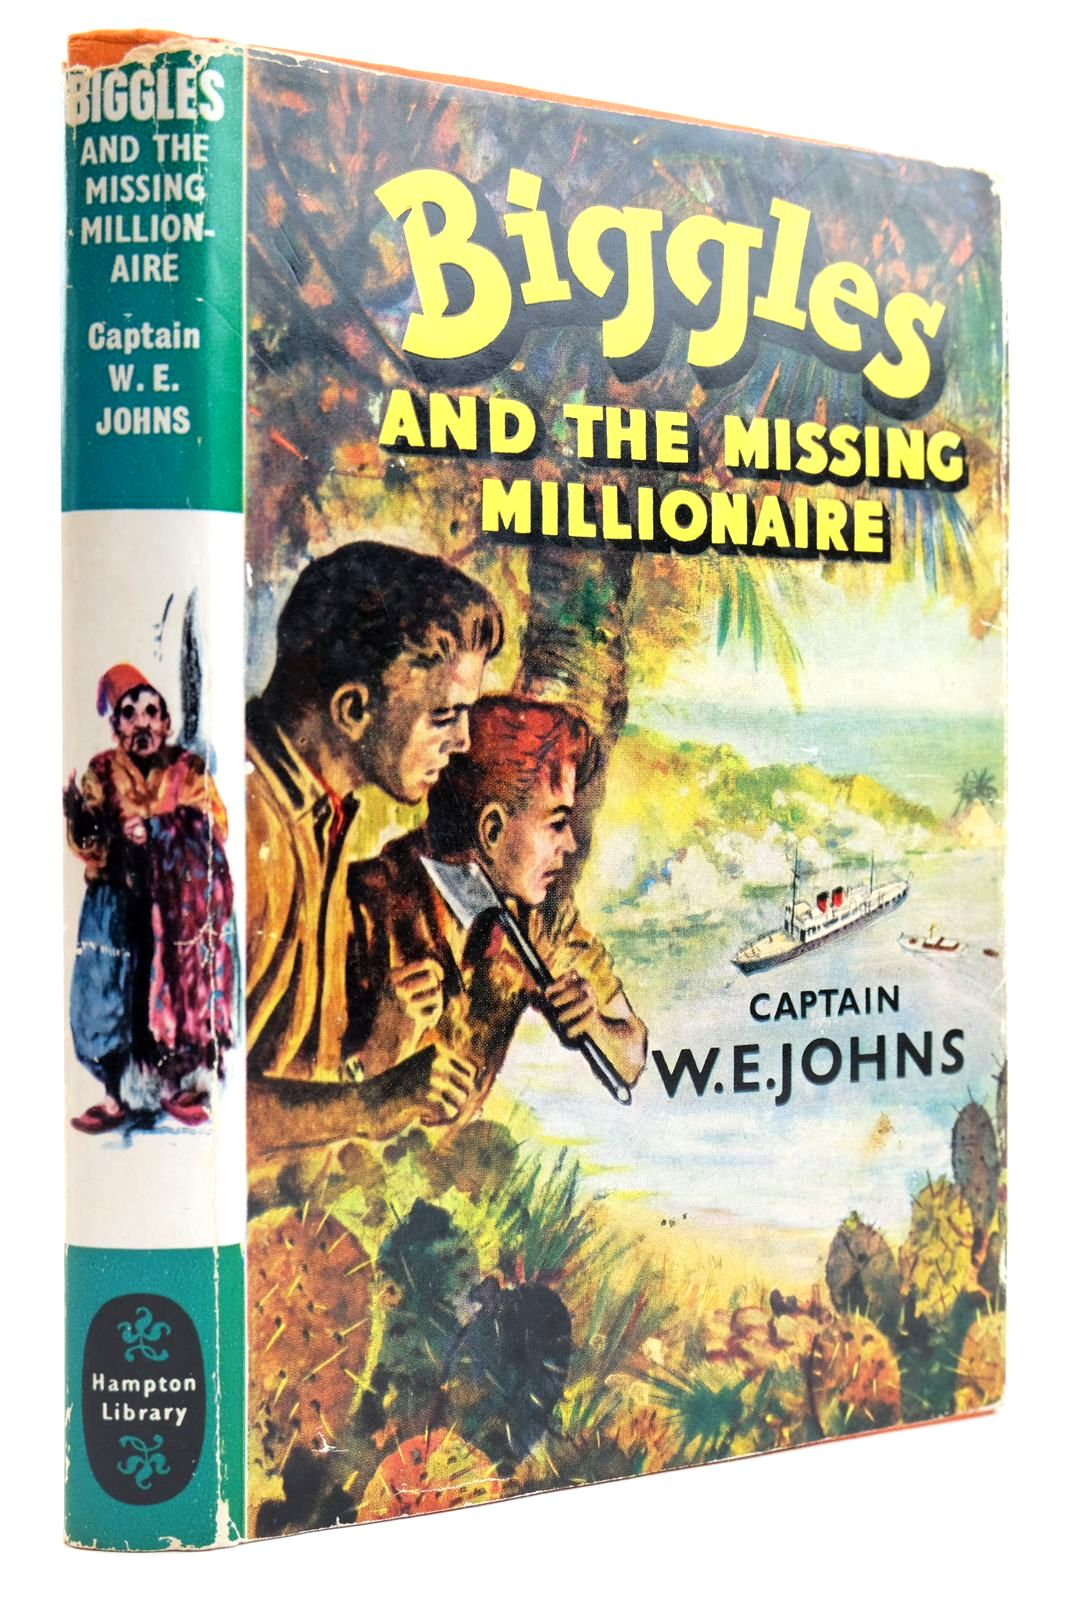 Photo of BIGGLES AND THE MISSING MILLIONAIRE written by Johns, W.E. published by Brockhampton Press (STOCK CODE: 2132496)  for sale by Stella & Rose's Books